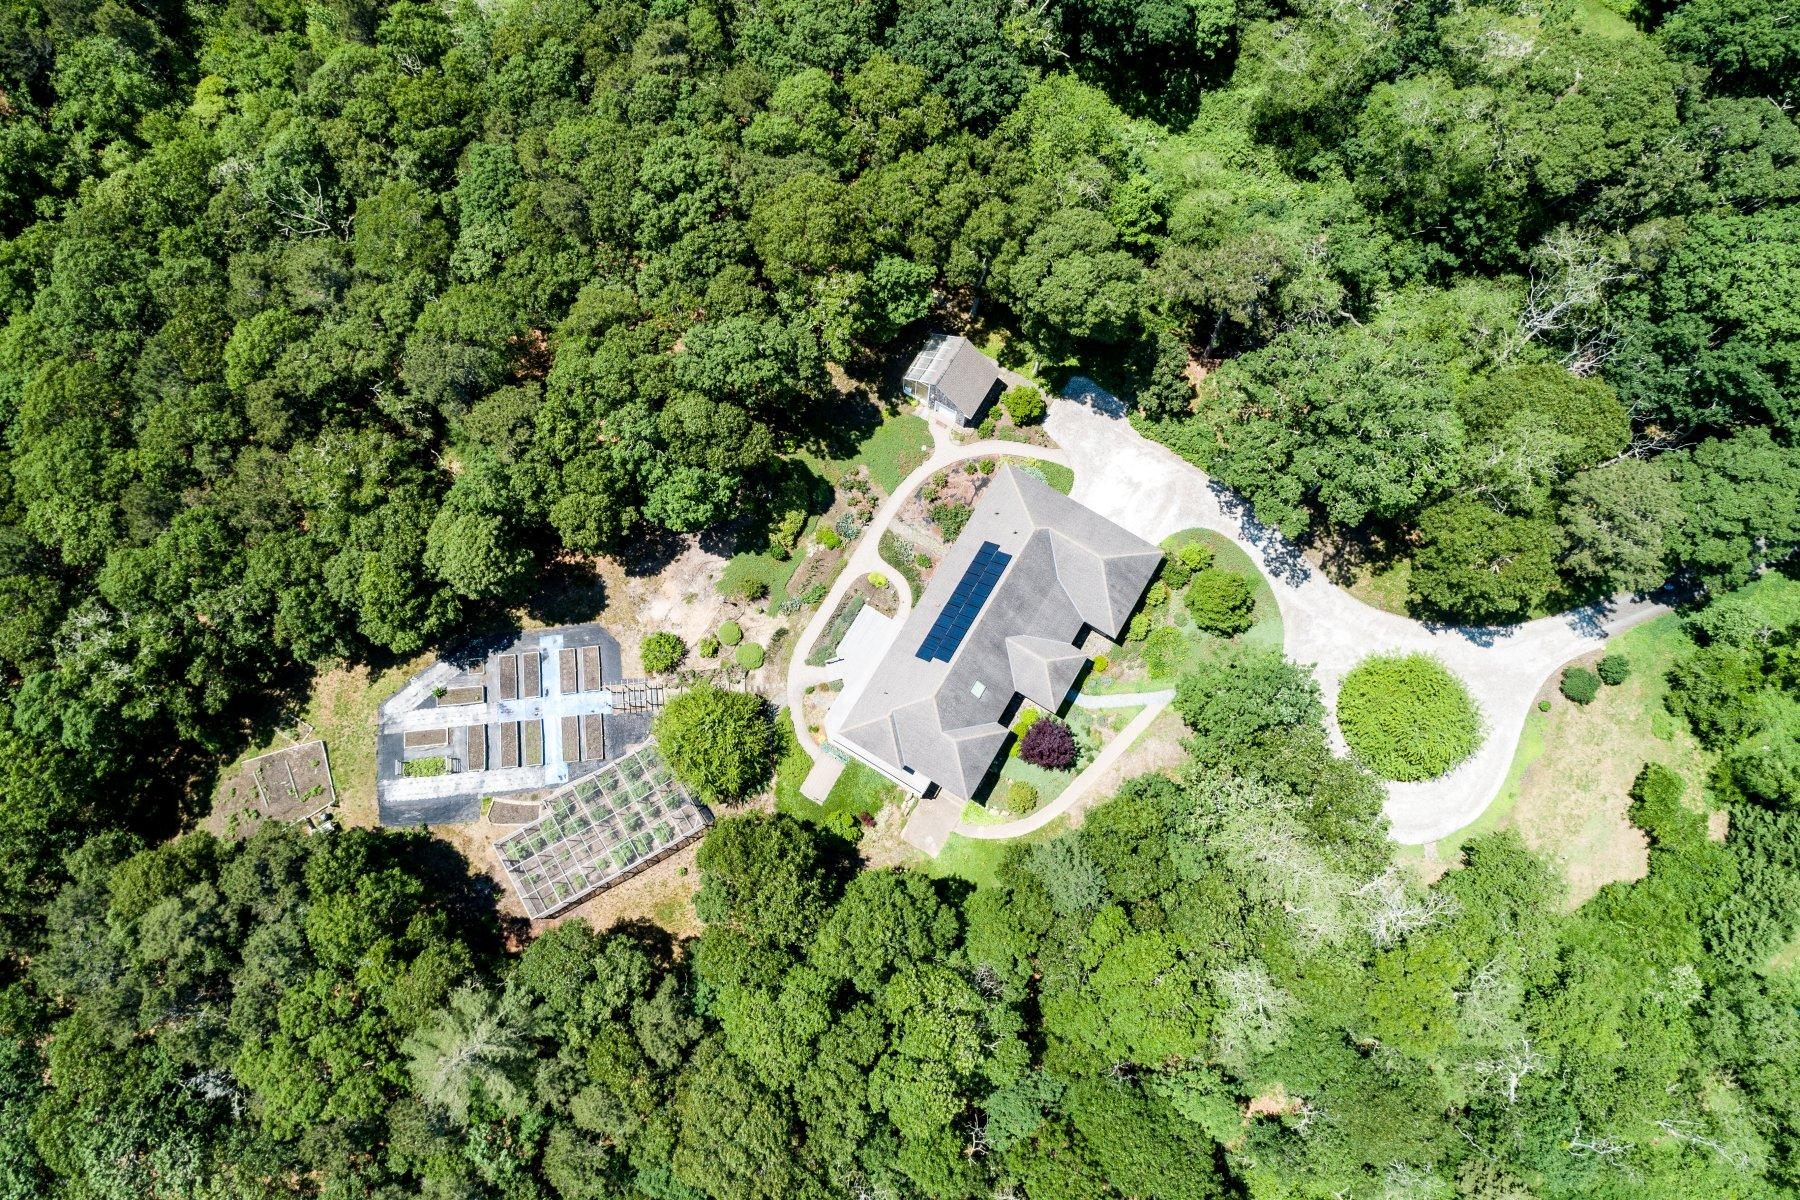 521 Orleans Road, Orleans MA, 02653